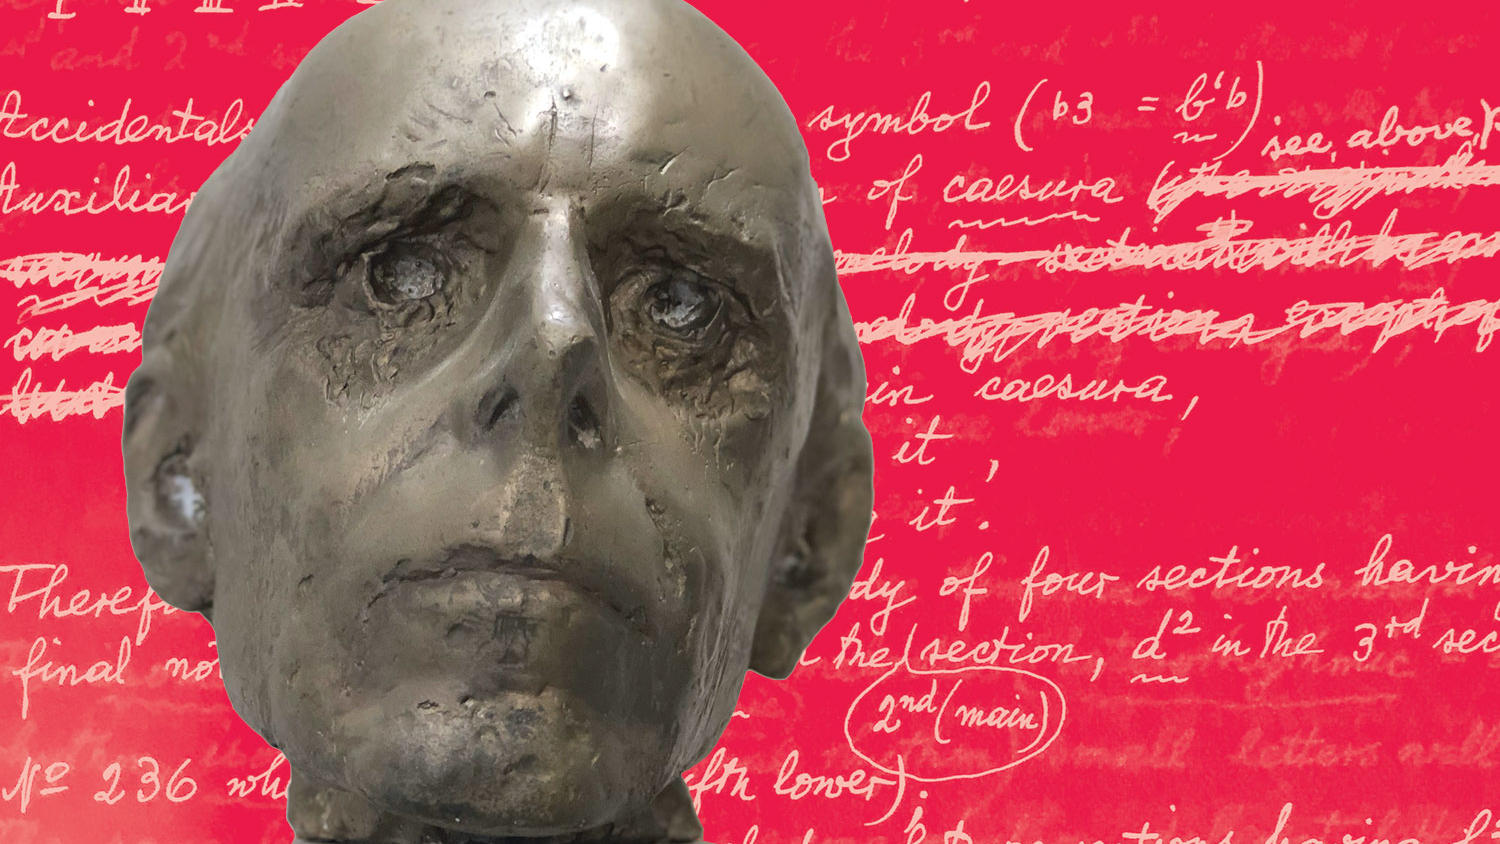 Bronze bust of Béla Bartok over sheet music